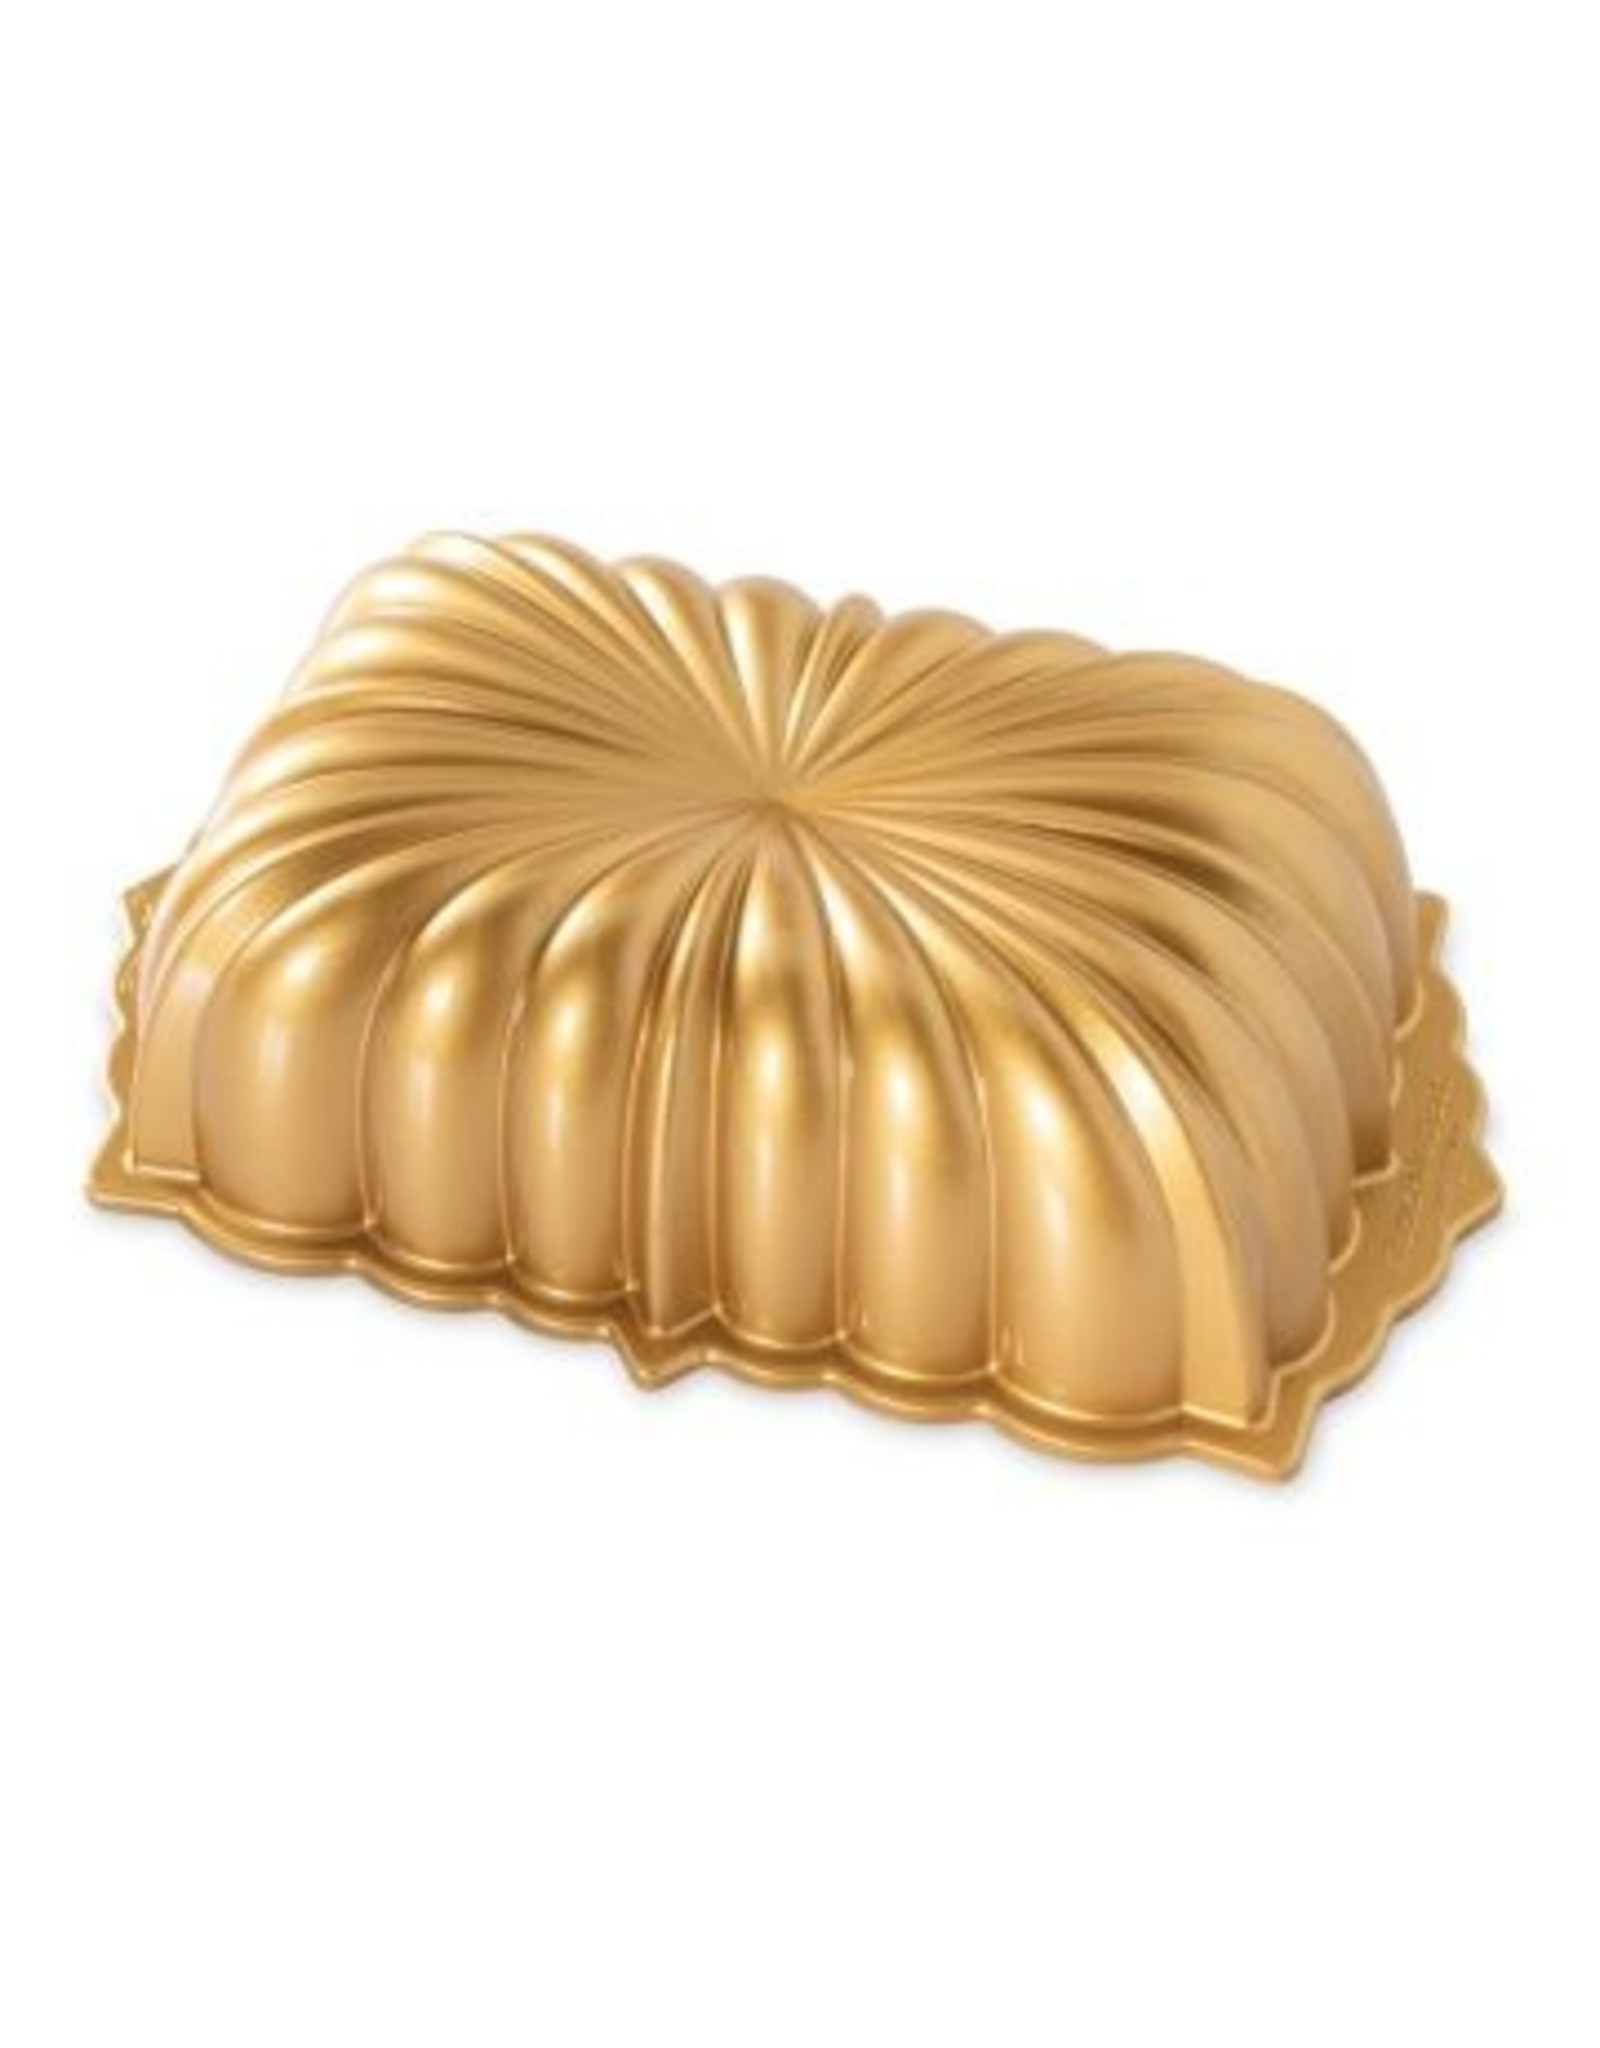 Nordicware CLASSIC FLUTED LOAF PAN